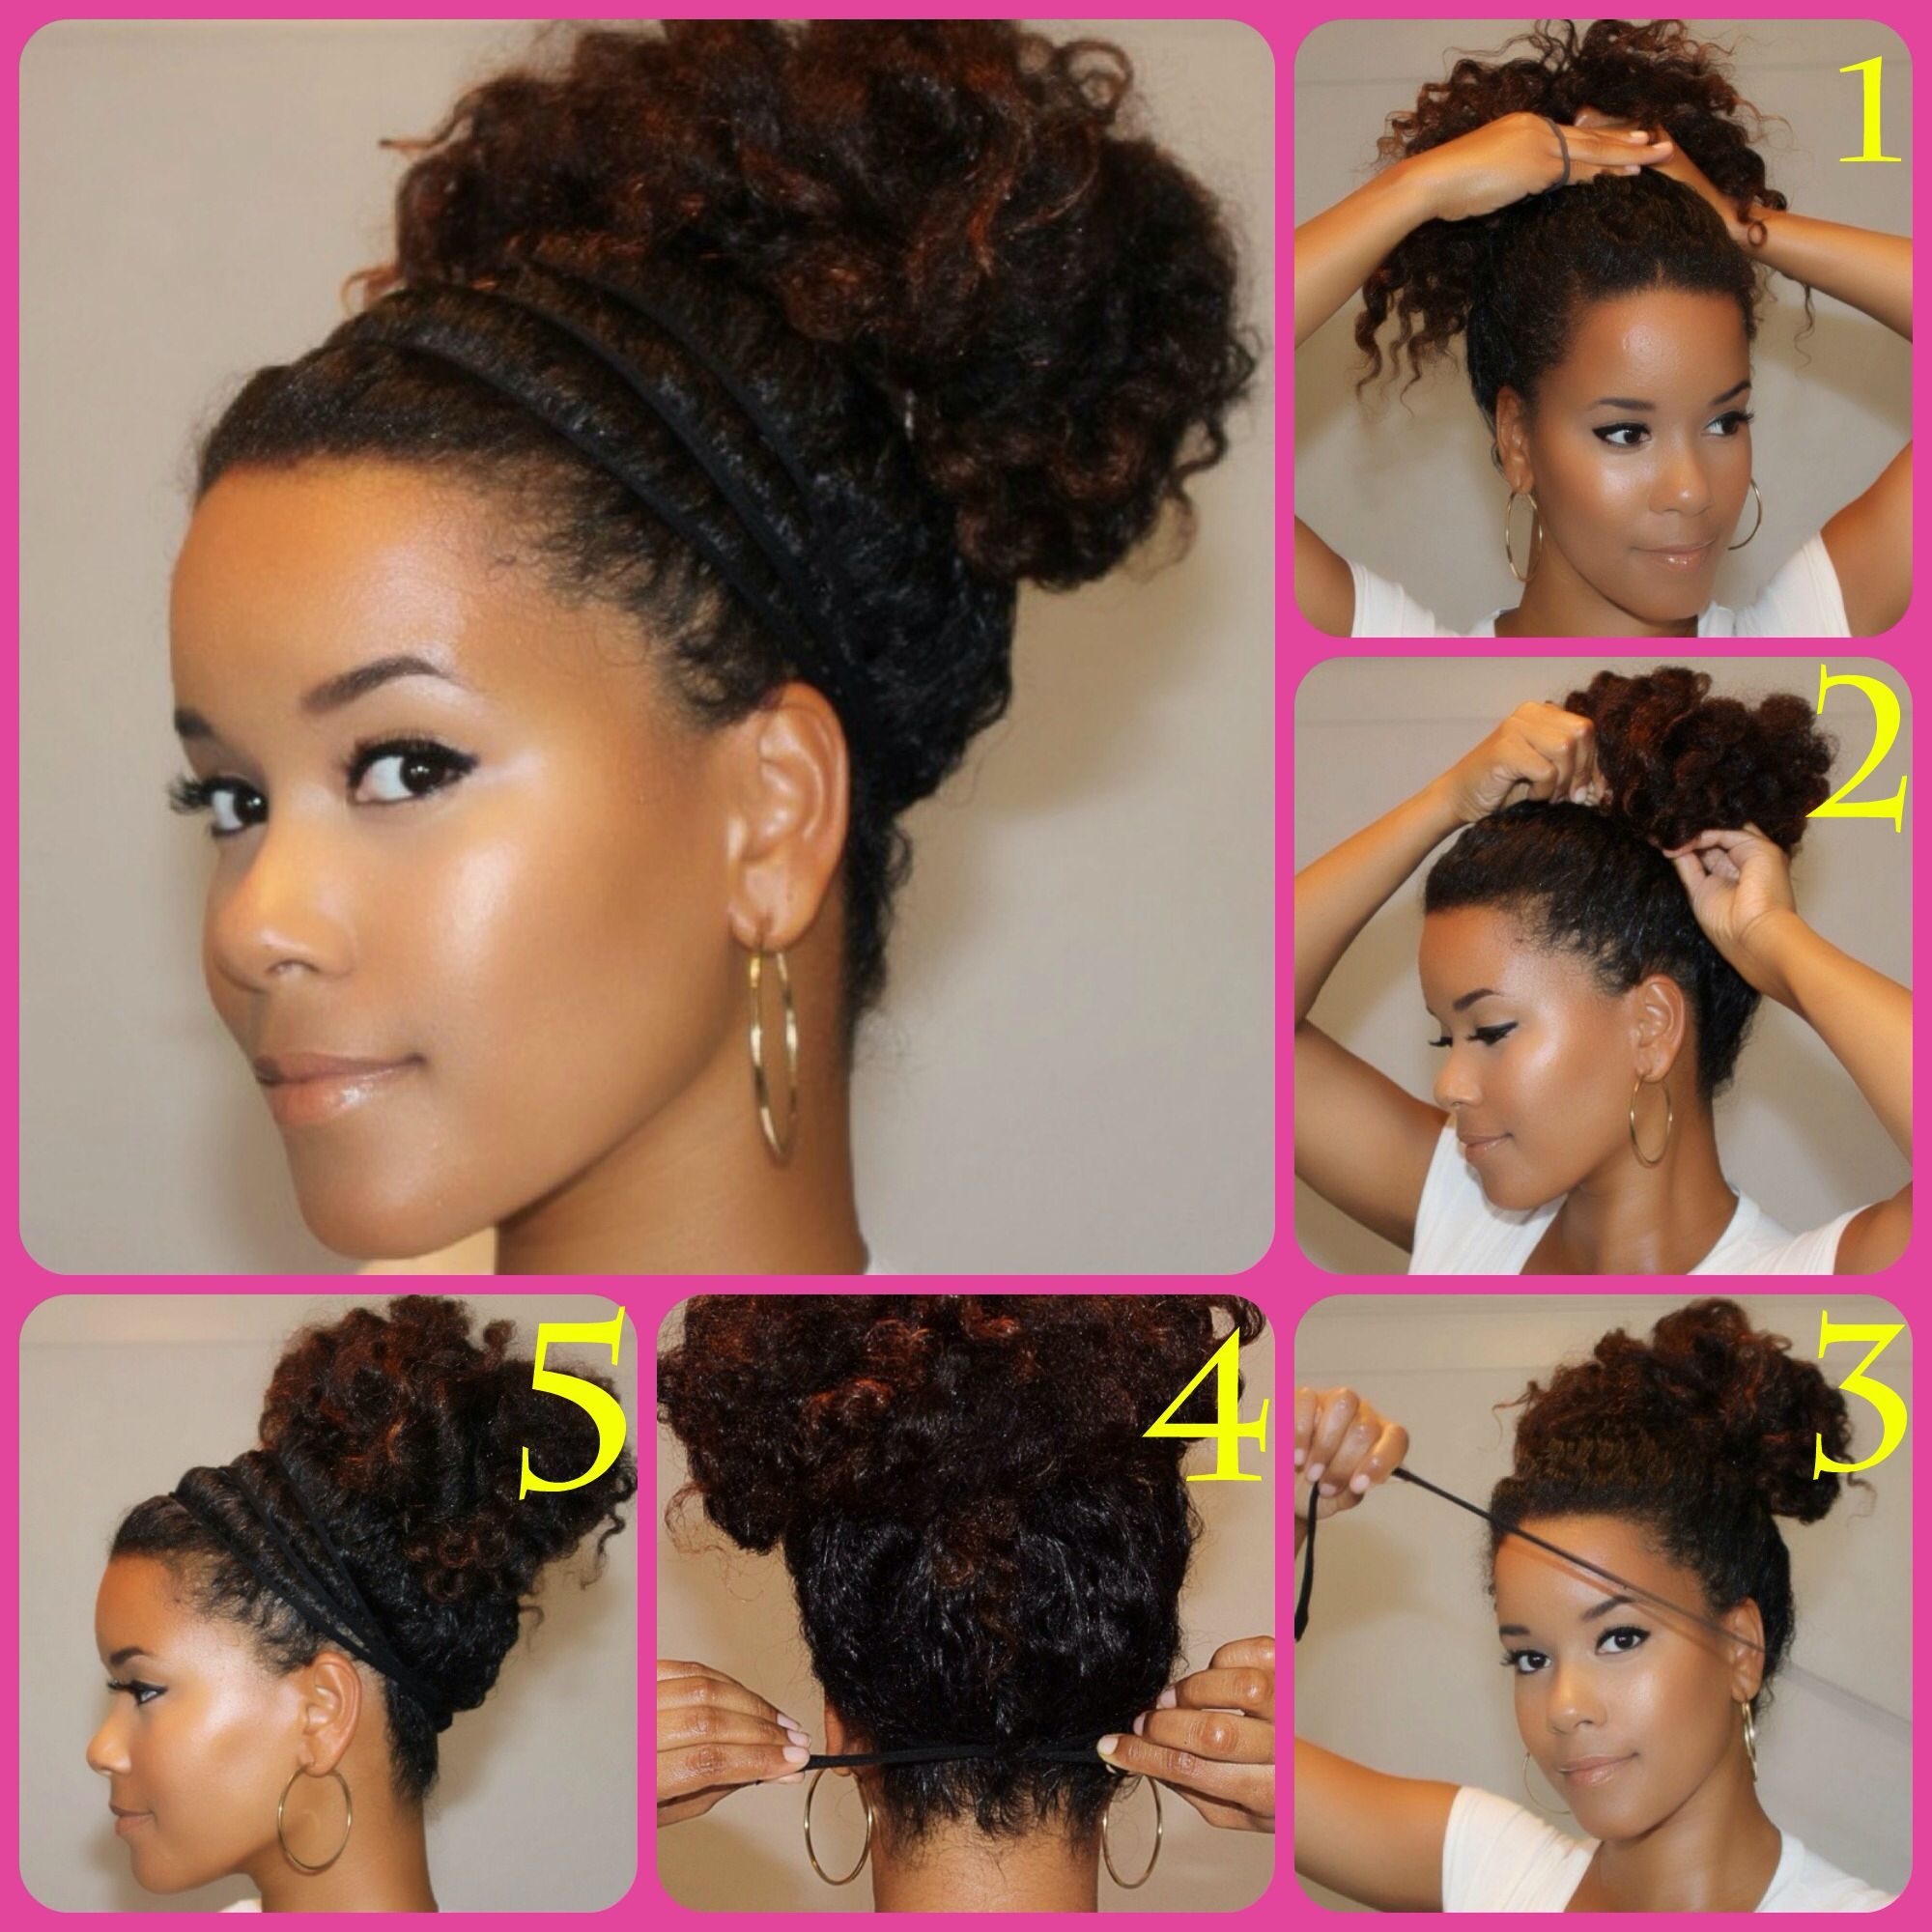 Natural Hair Diy 5 Back To School Inspired Styles The Layer Curly Hair Styles Naturally Natural Hair Styles Curly Hair Styles